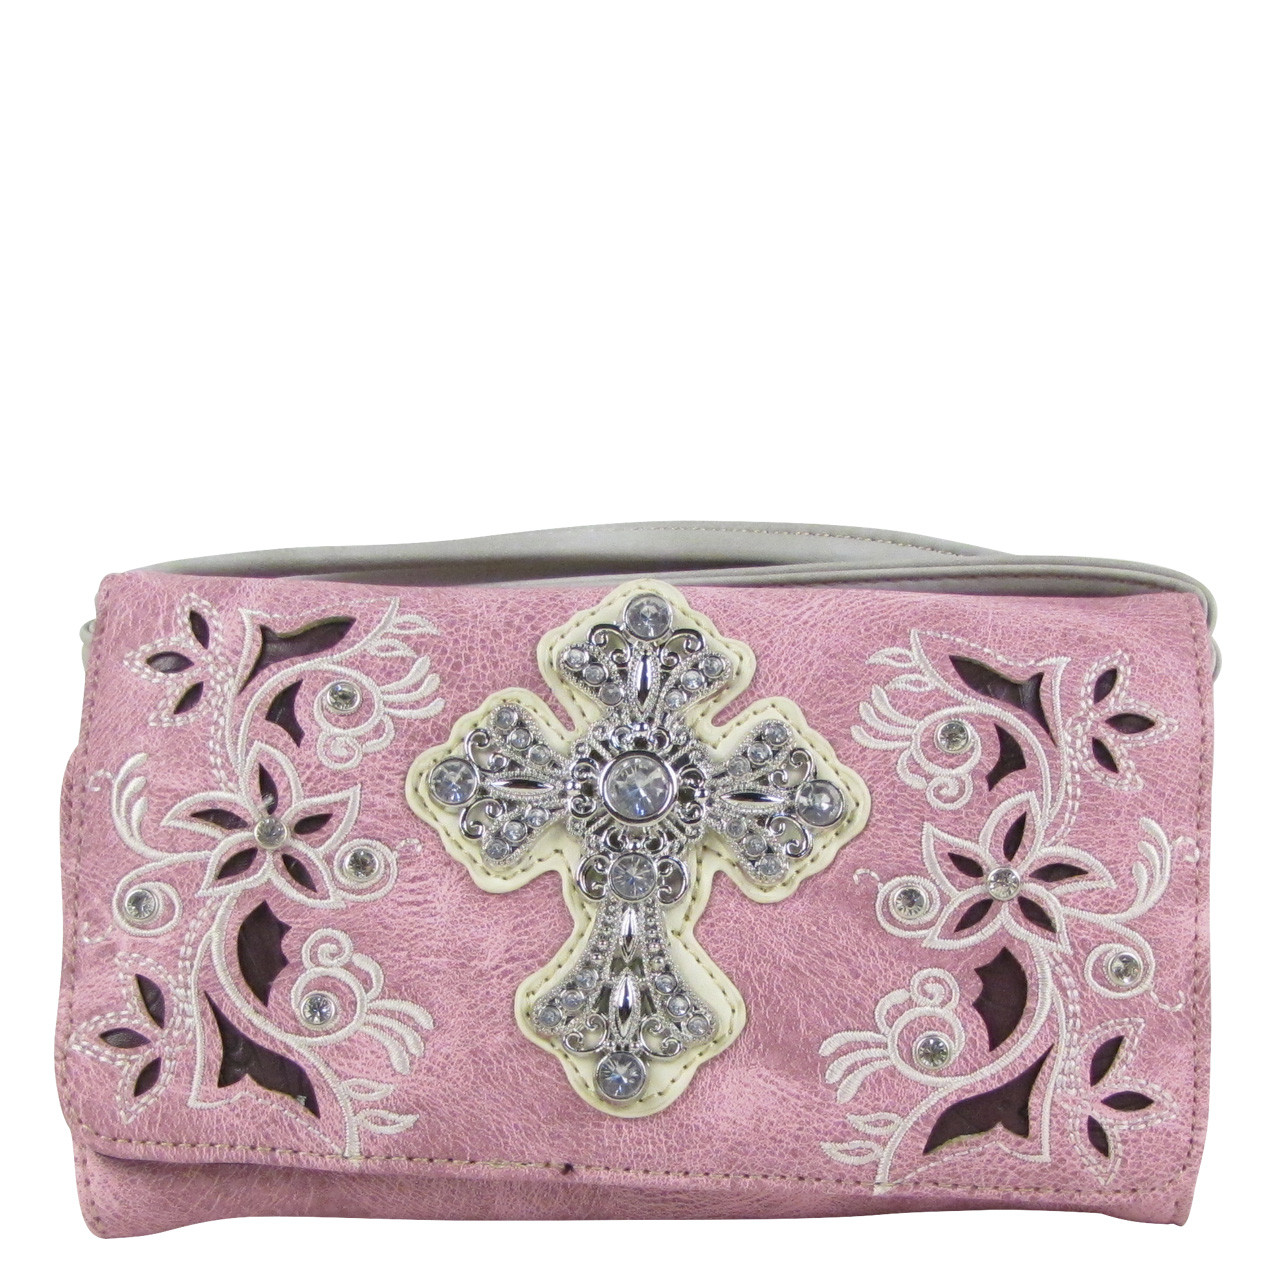 PINK RHINESTONE FLOWER CROSS LOOK CLUTCH TRIFOLD WALLET CW1-0471PNK